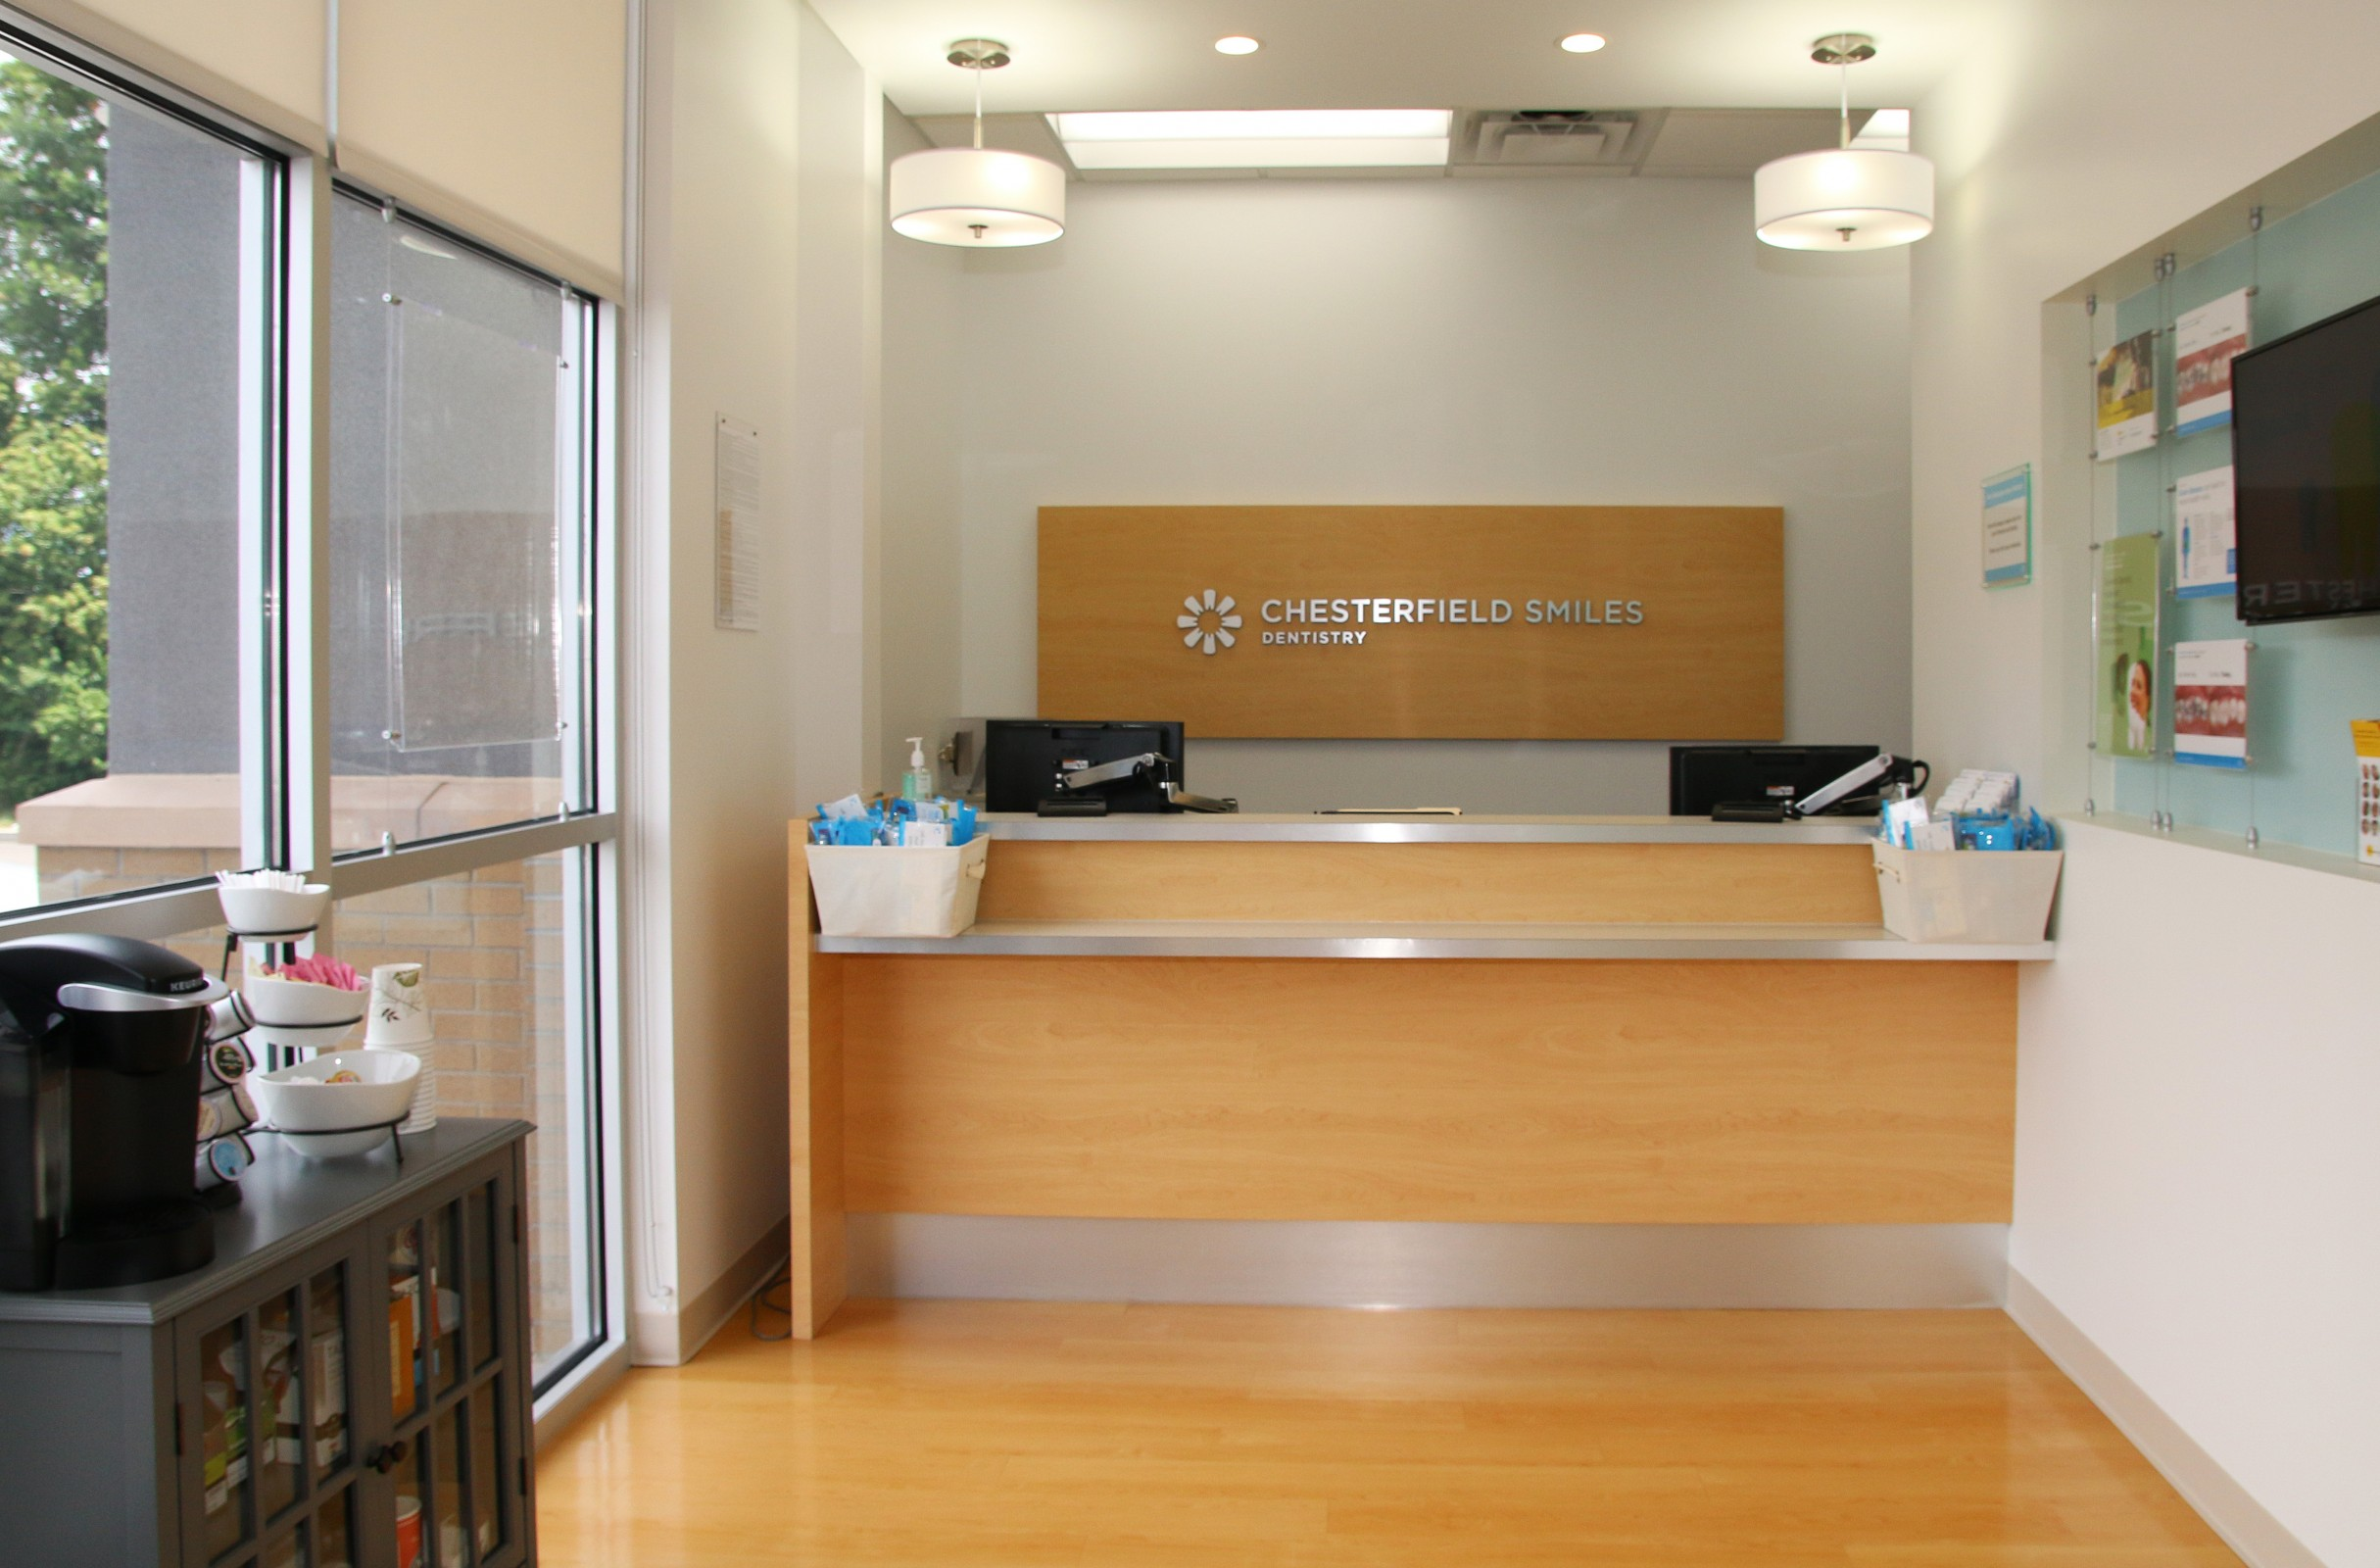 Chesterfield Smiles Dentistry image 1